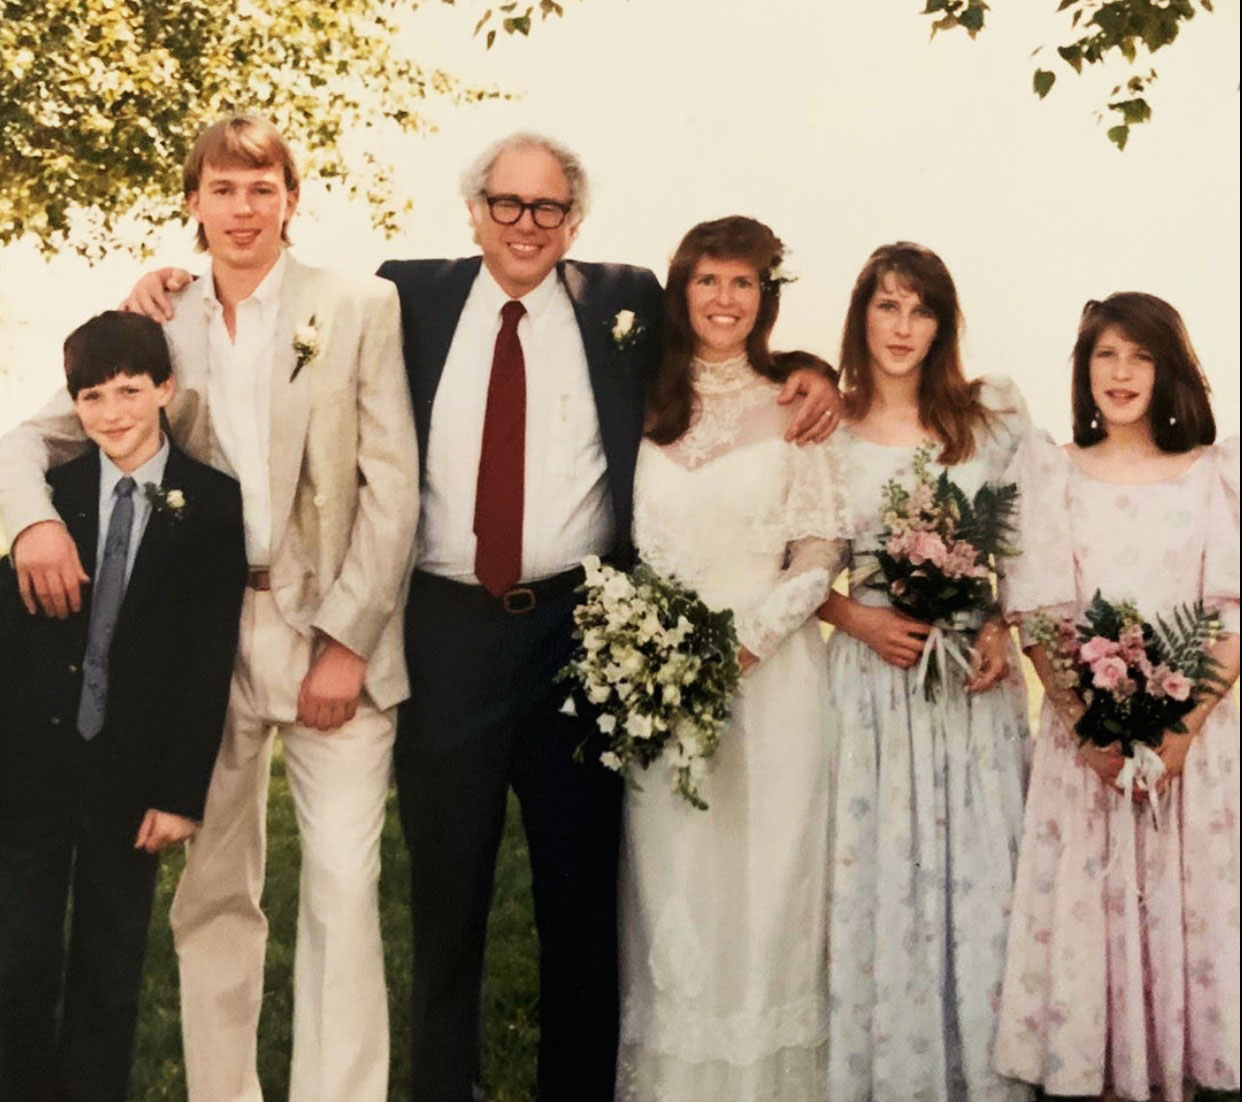 Sanders with Jane and their newly blended family in 1988